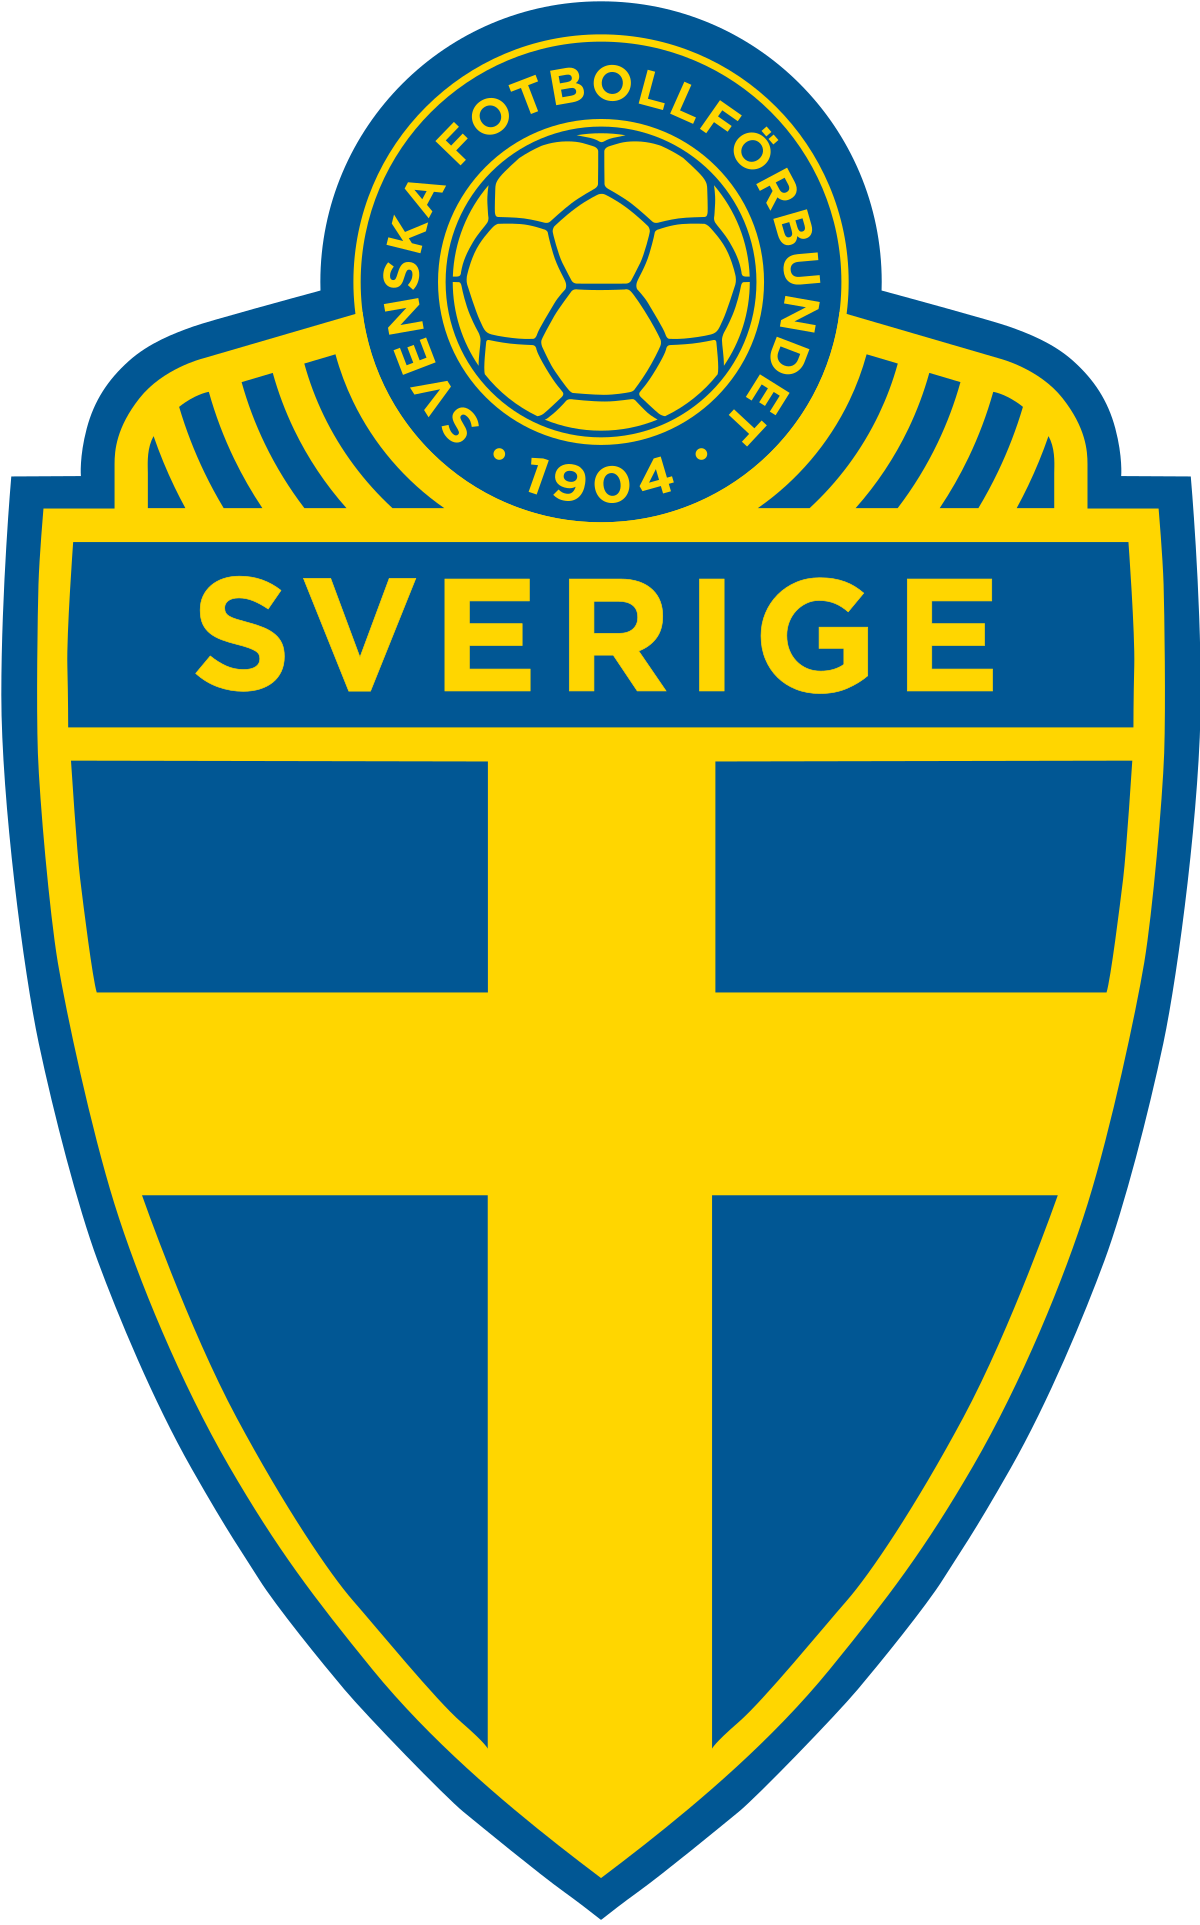 Sweden national football team.